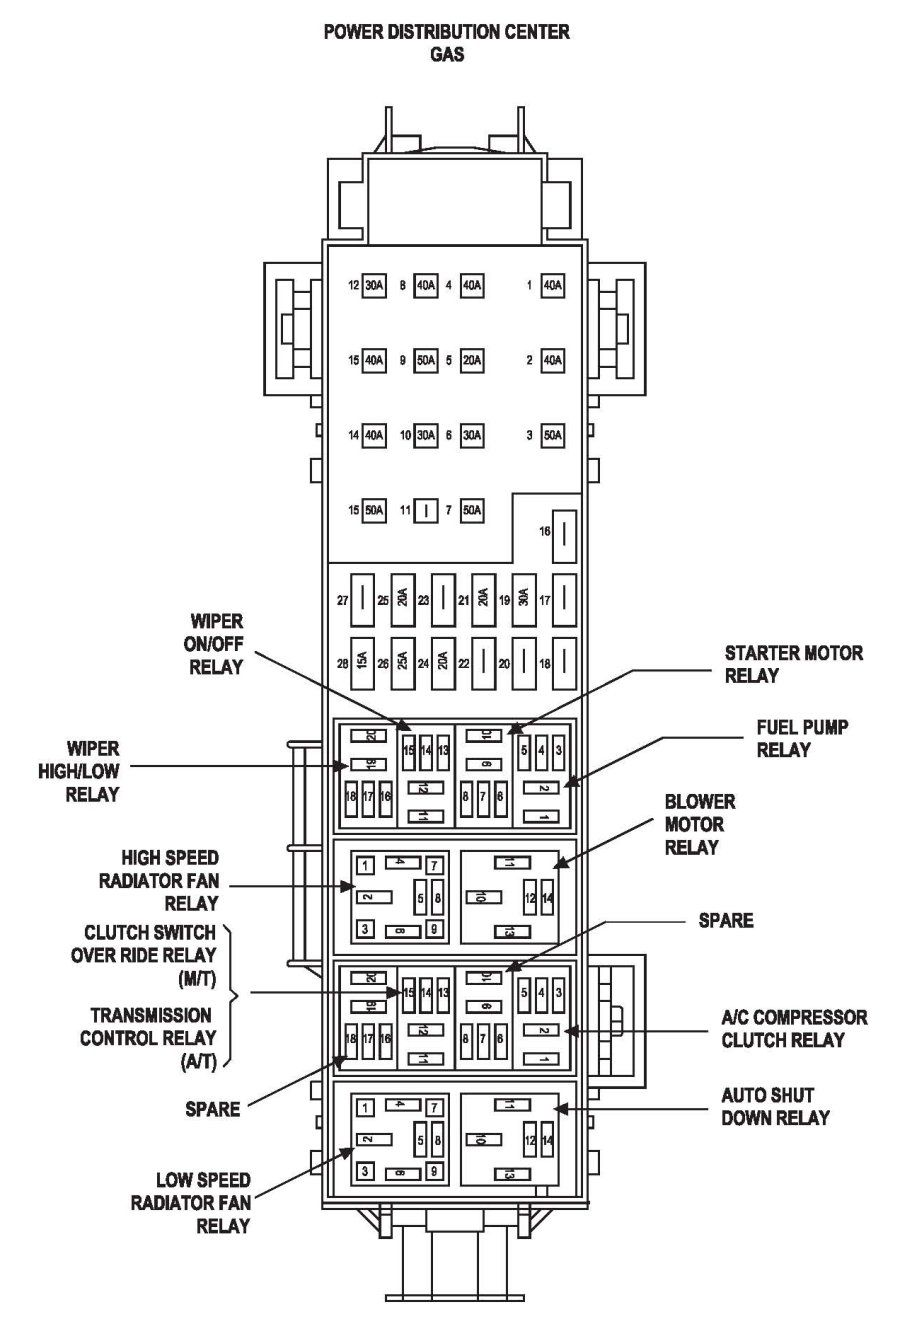 b3536c3739783eb19f827744cc42c3c4 jeep liberty fuse box diagram image details jeep liberty 2005 jeep liberty interior fuse box diagram at webbmarketing.co